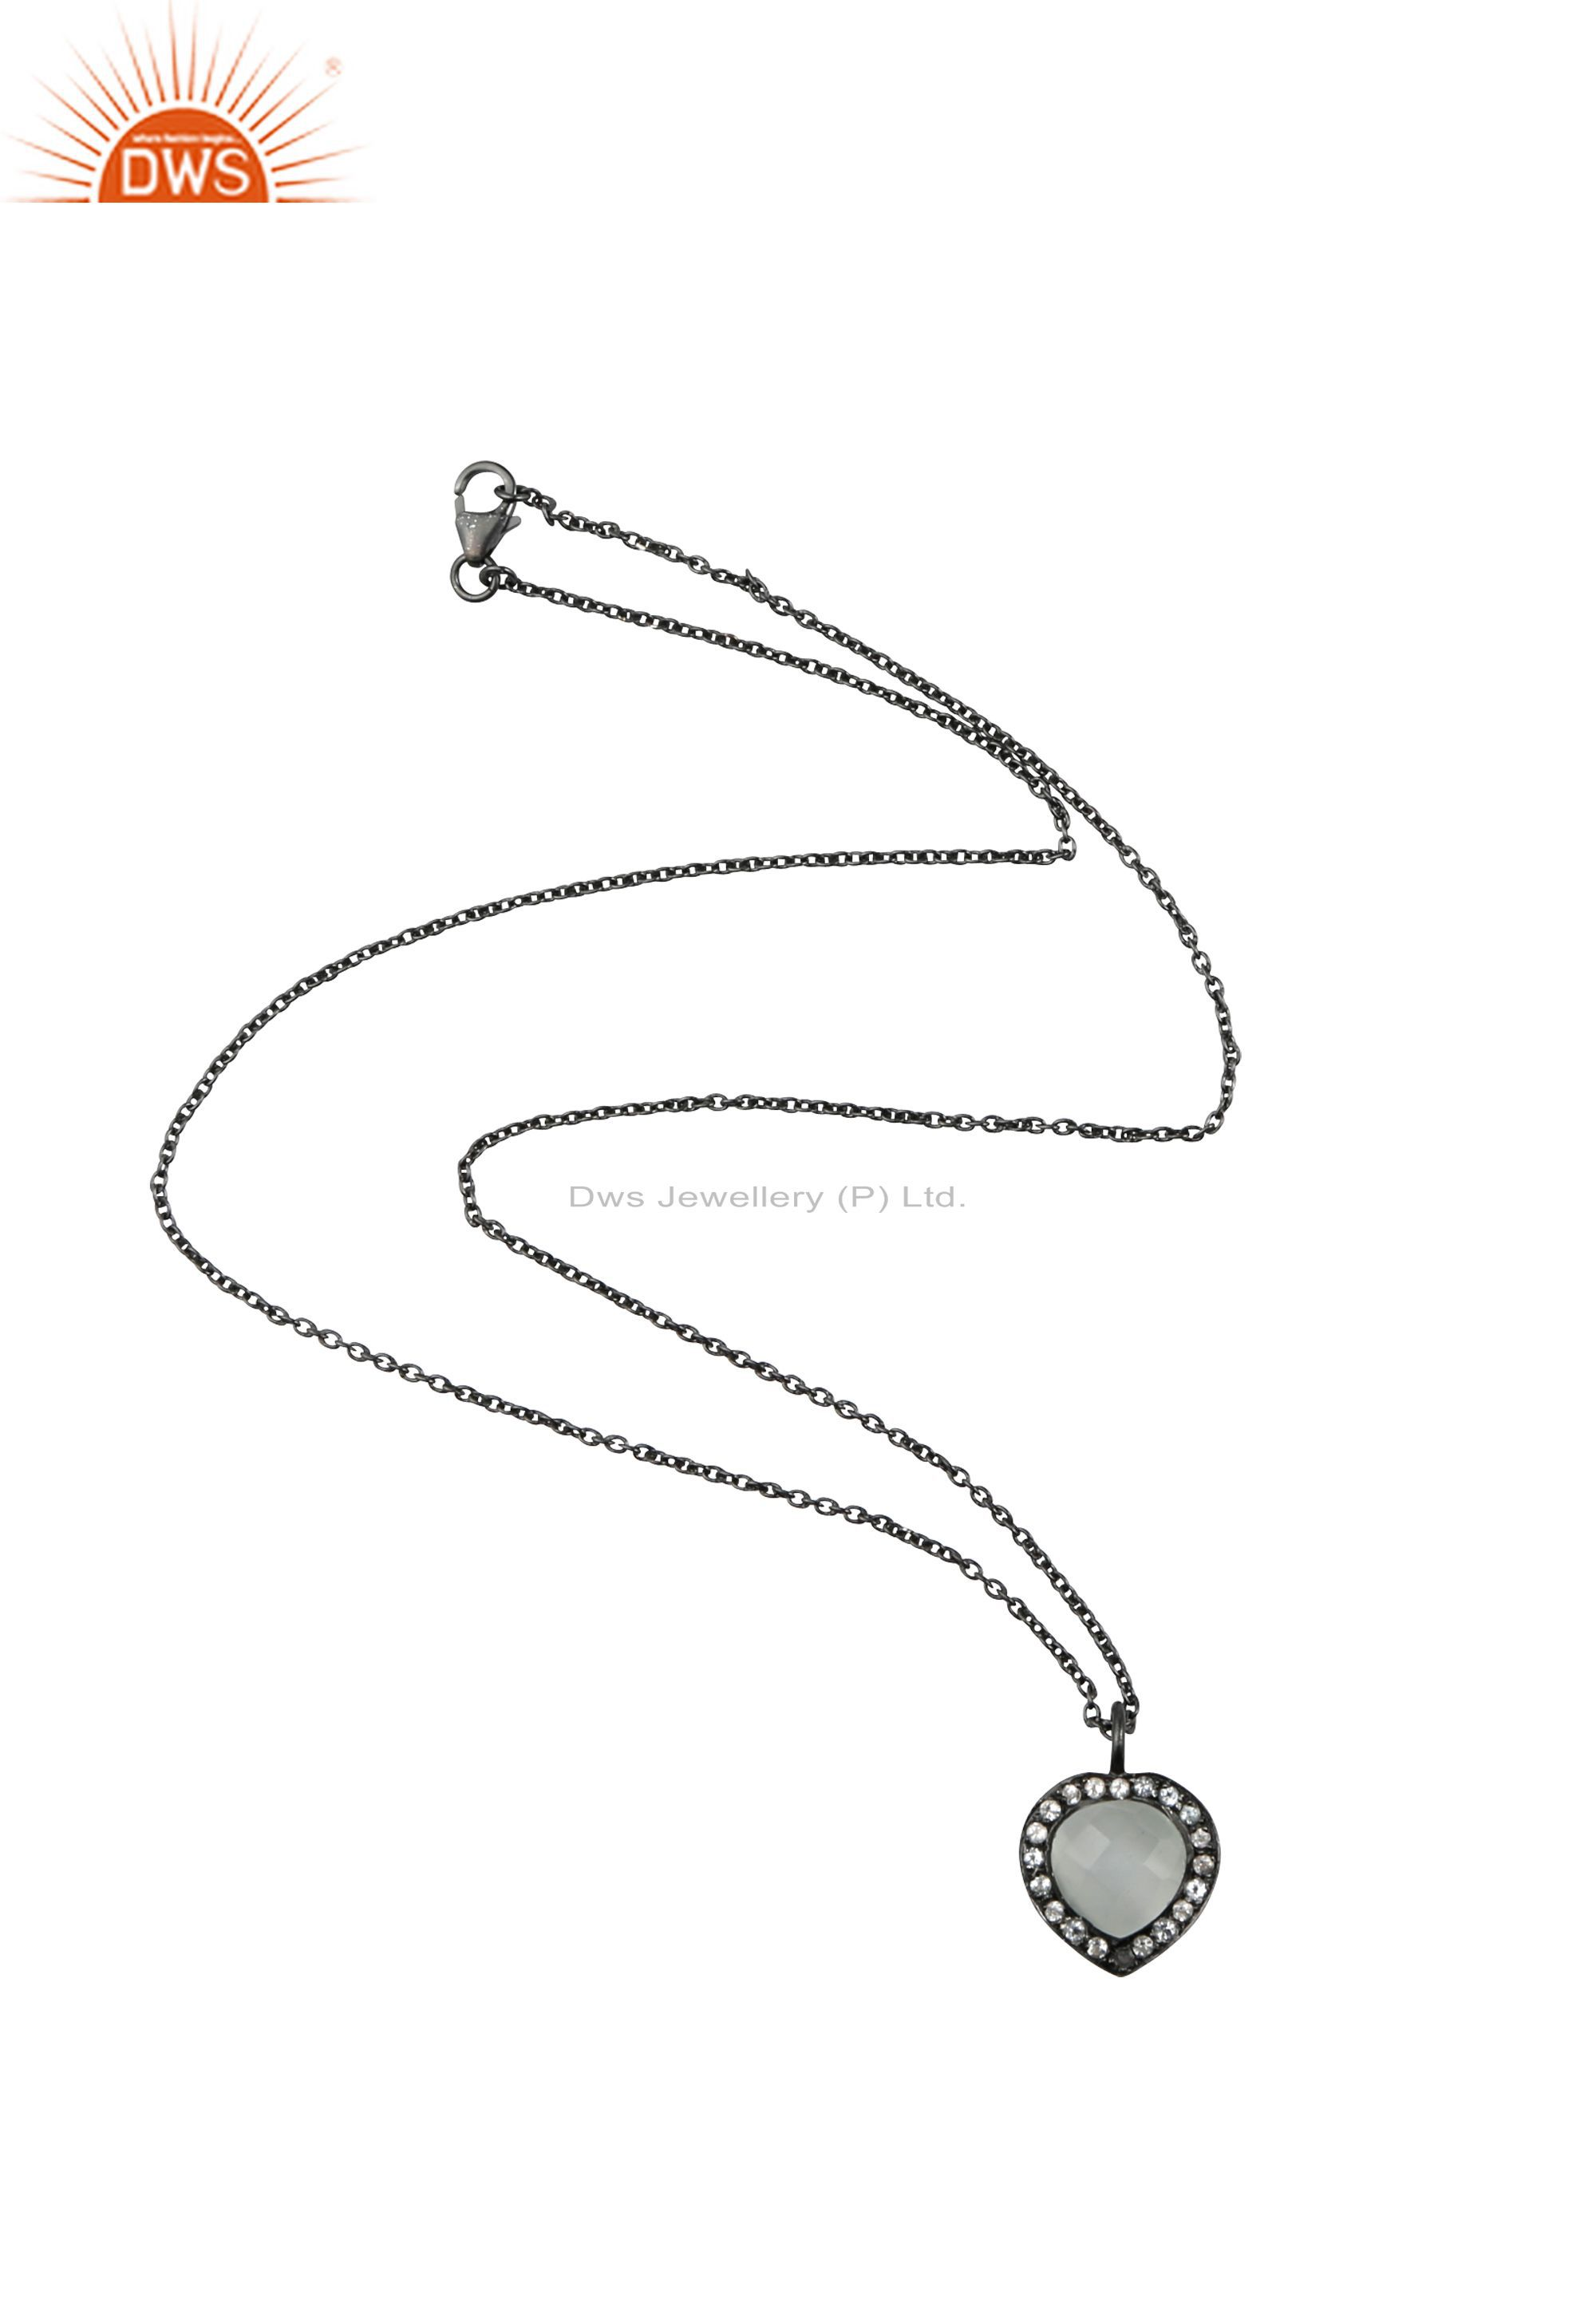 Oxidized Sterling Silver White Moonstone & White Topaz Heart Pendant With Chain